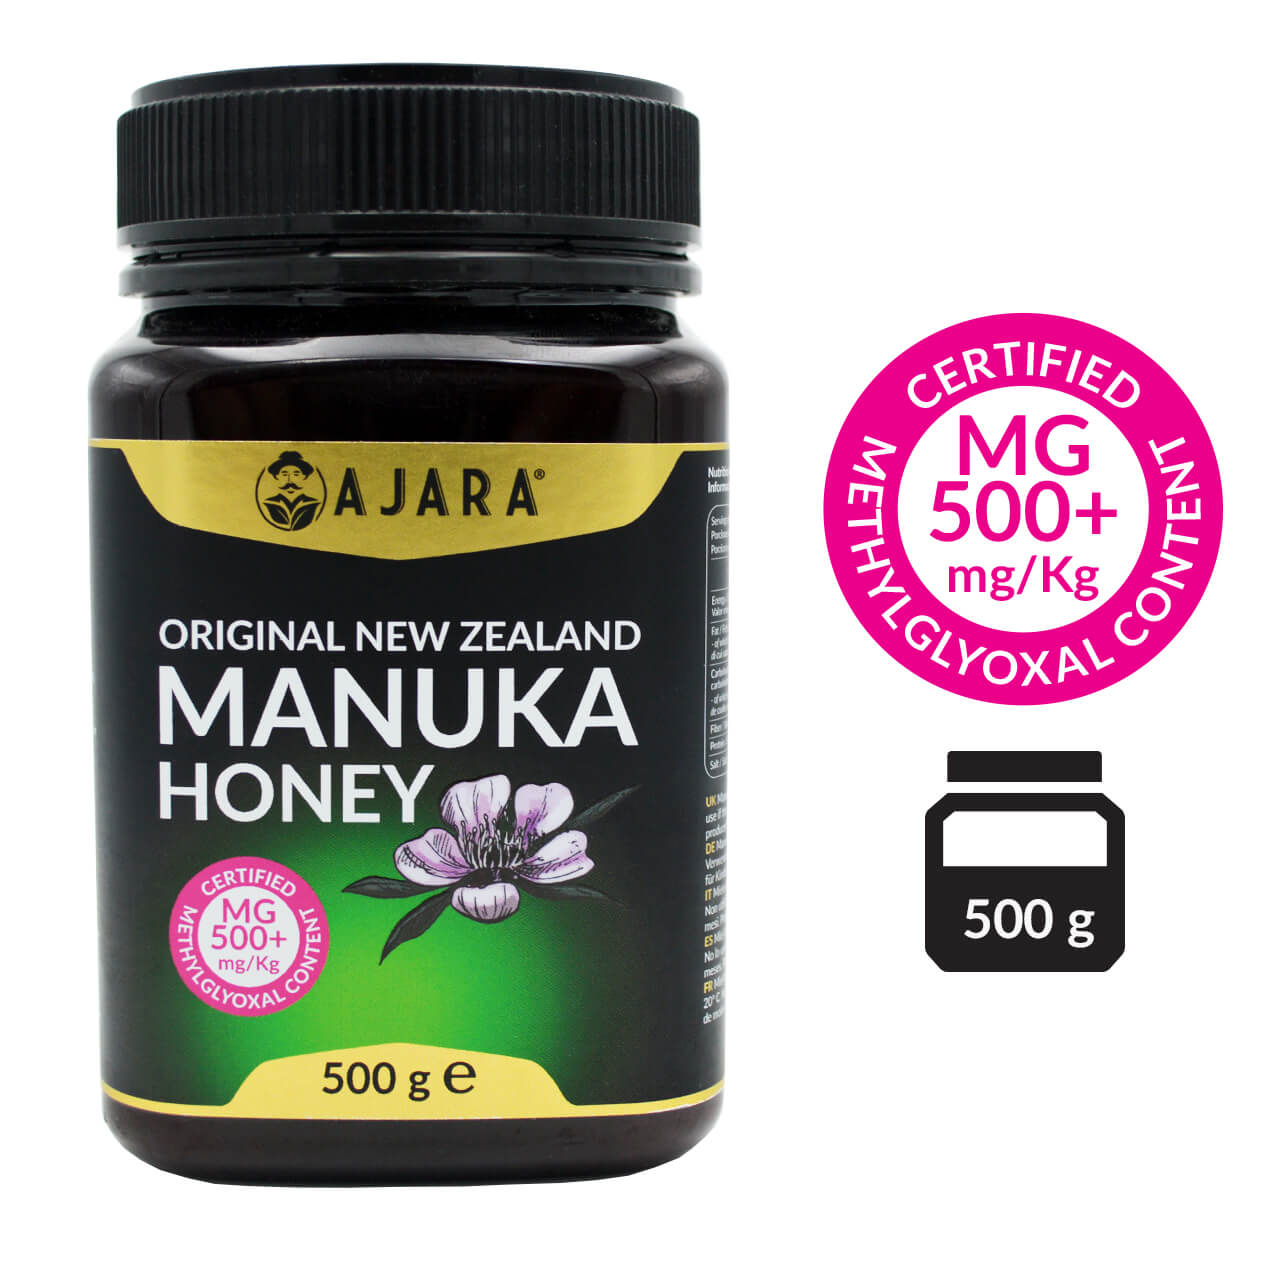 Manuka honey MG 500+ 500g